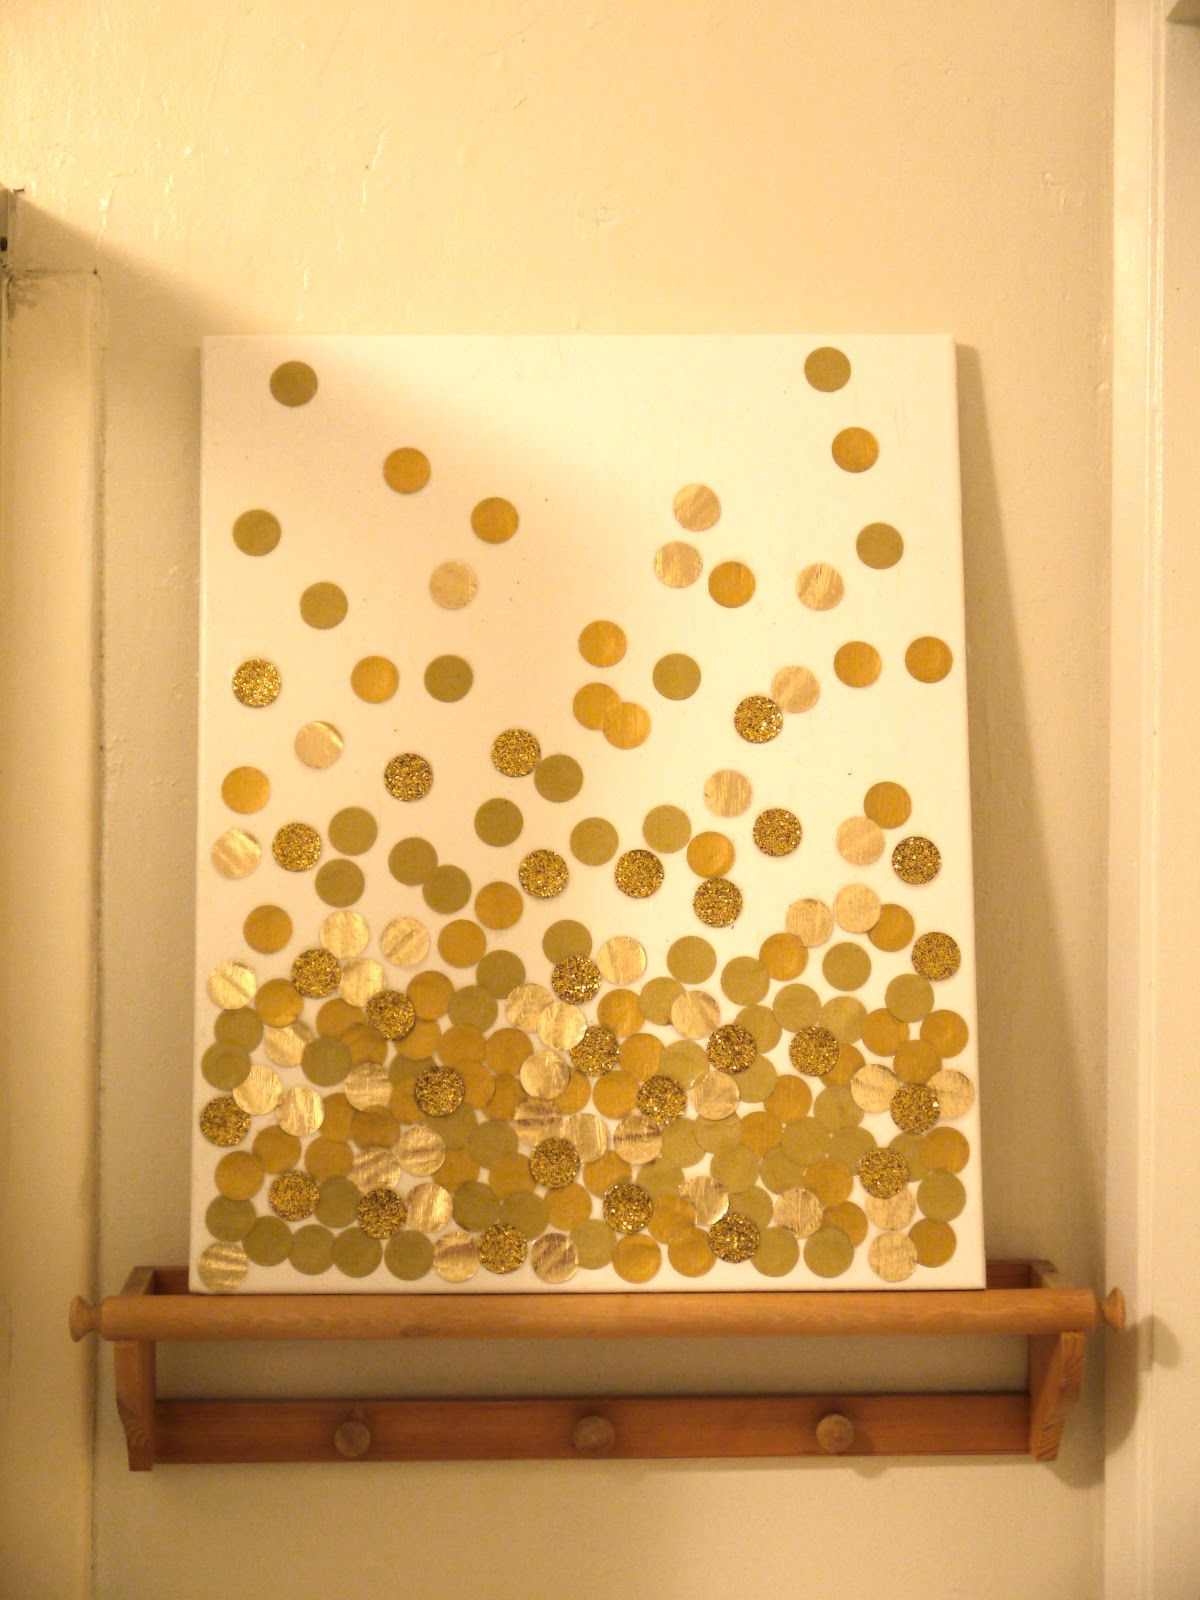 diy glitter dots on canvas wall art - would be cute in pink, gray ...